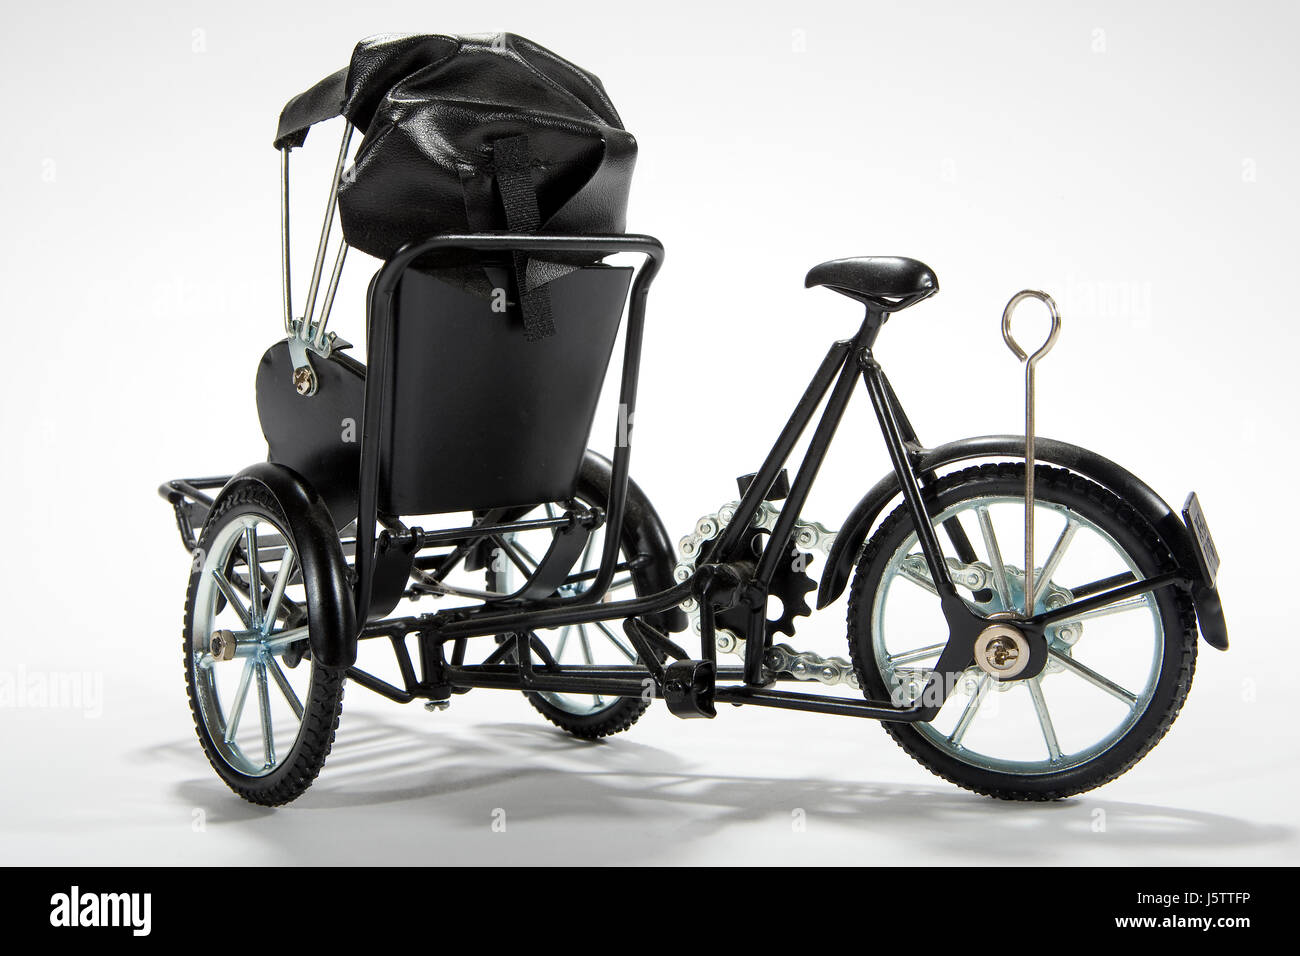 asia transport means of conveyance vehicle means of travel rickshaw drive - Stock Image